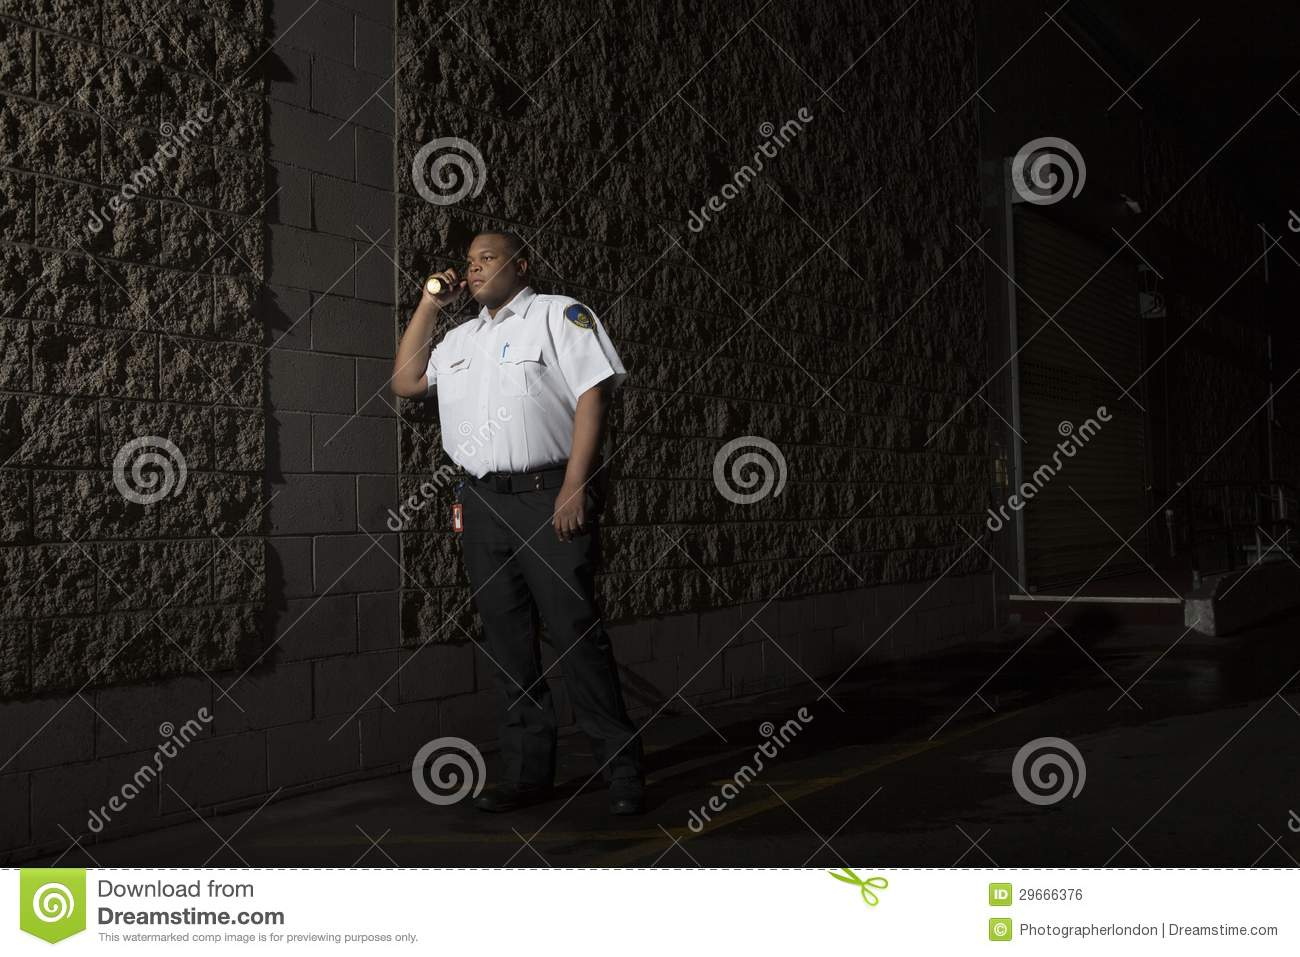 Security Guard Patrols At Night With Torch Royalty Free Stock Image  Image 29666376